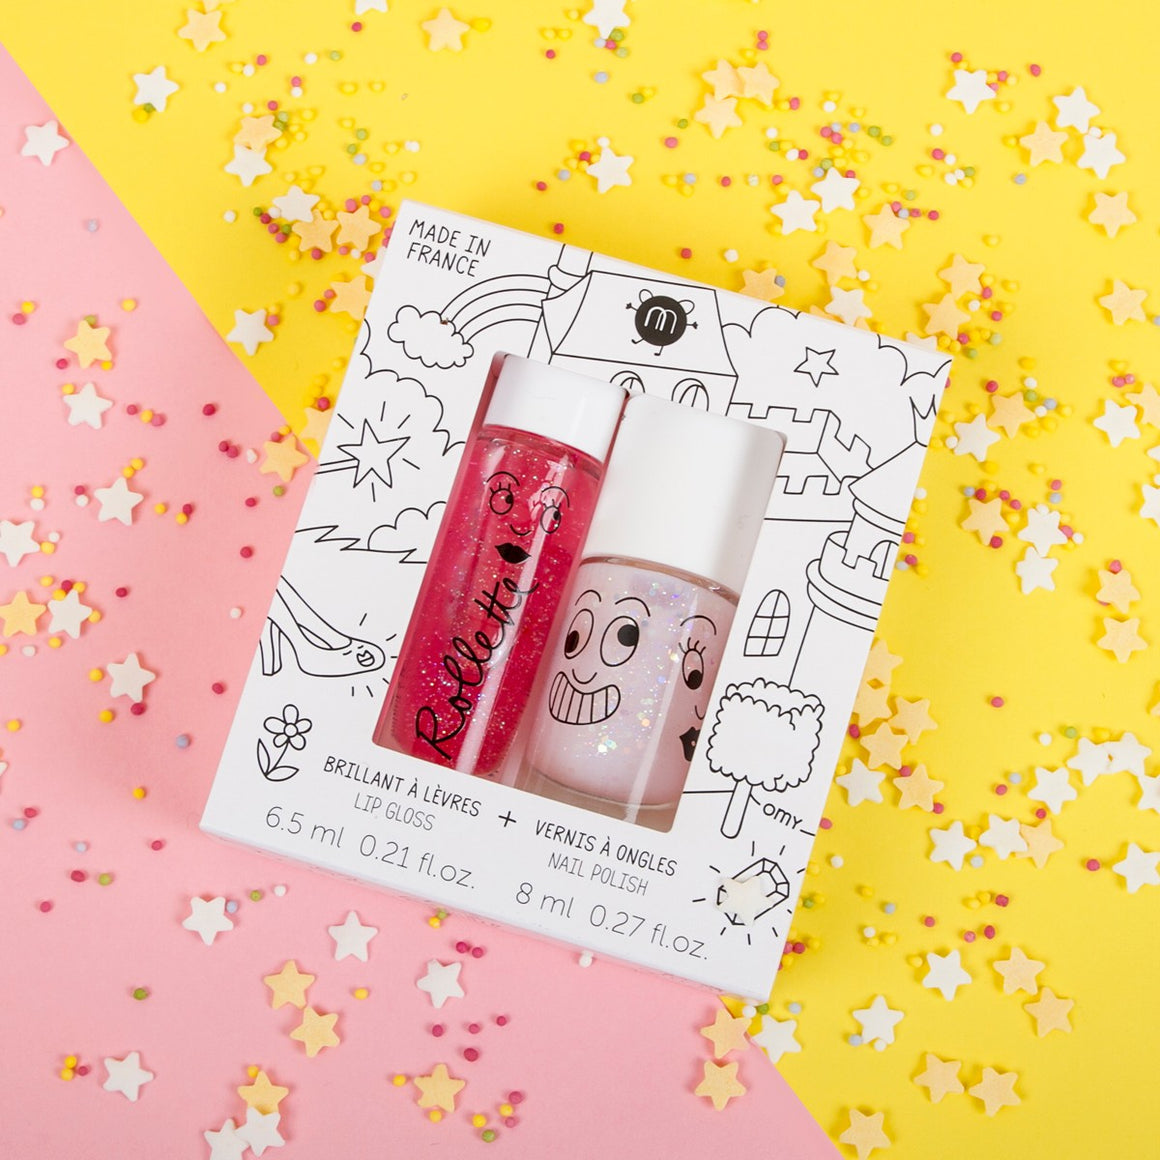 Nailmatic: Fairytales - Rollette & Nail Polish Gift Set